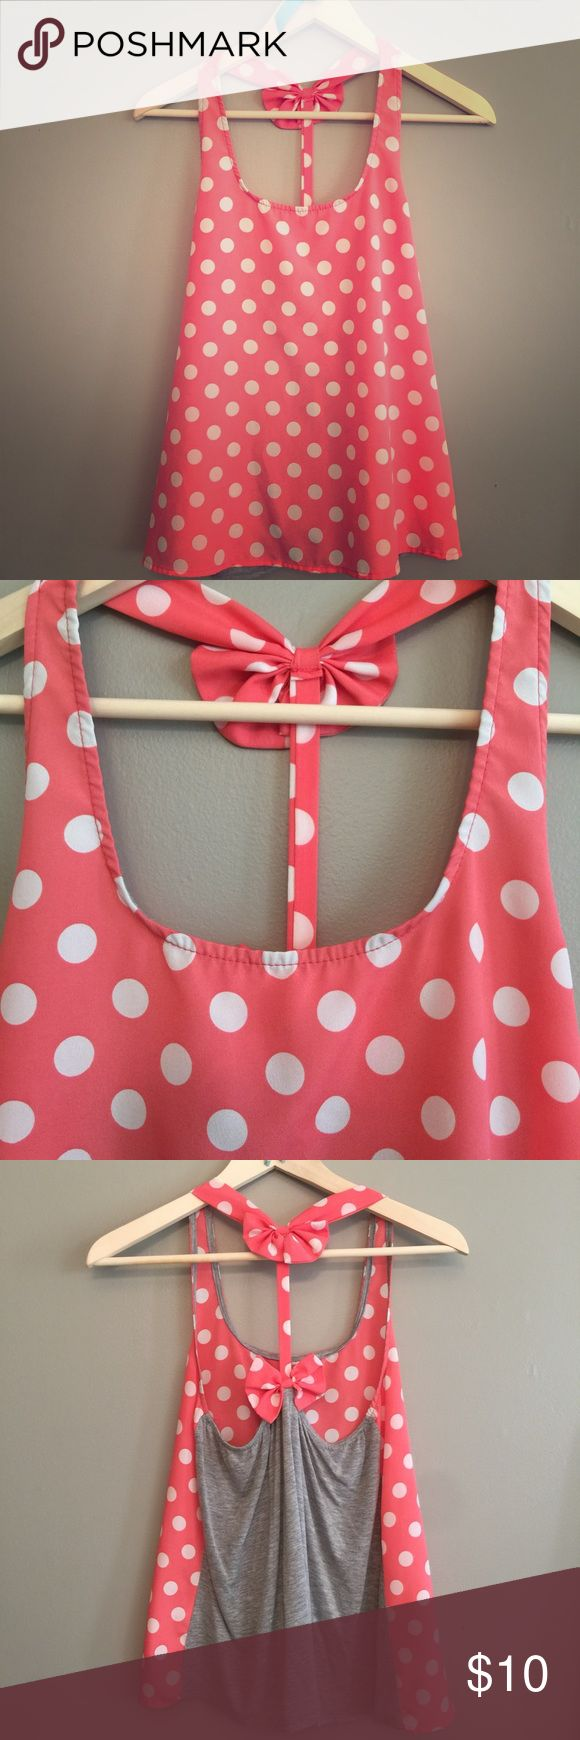 Polka dot bow tank top Super cute top in excellent condition. Love polka dots and the bow on the back is just too cute. Beautiful coral / pink color. Similar to one I saw from stitch fix! Size small. Brand is Bejewel. Tops Tank Tops